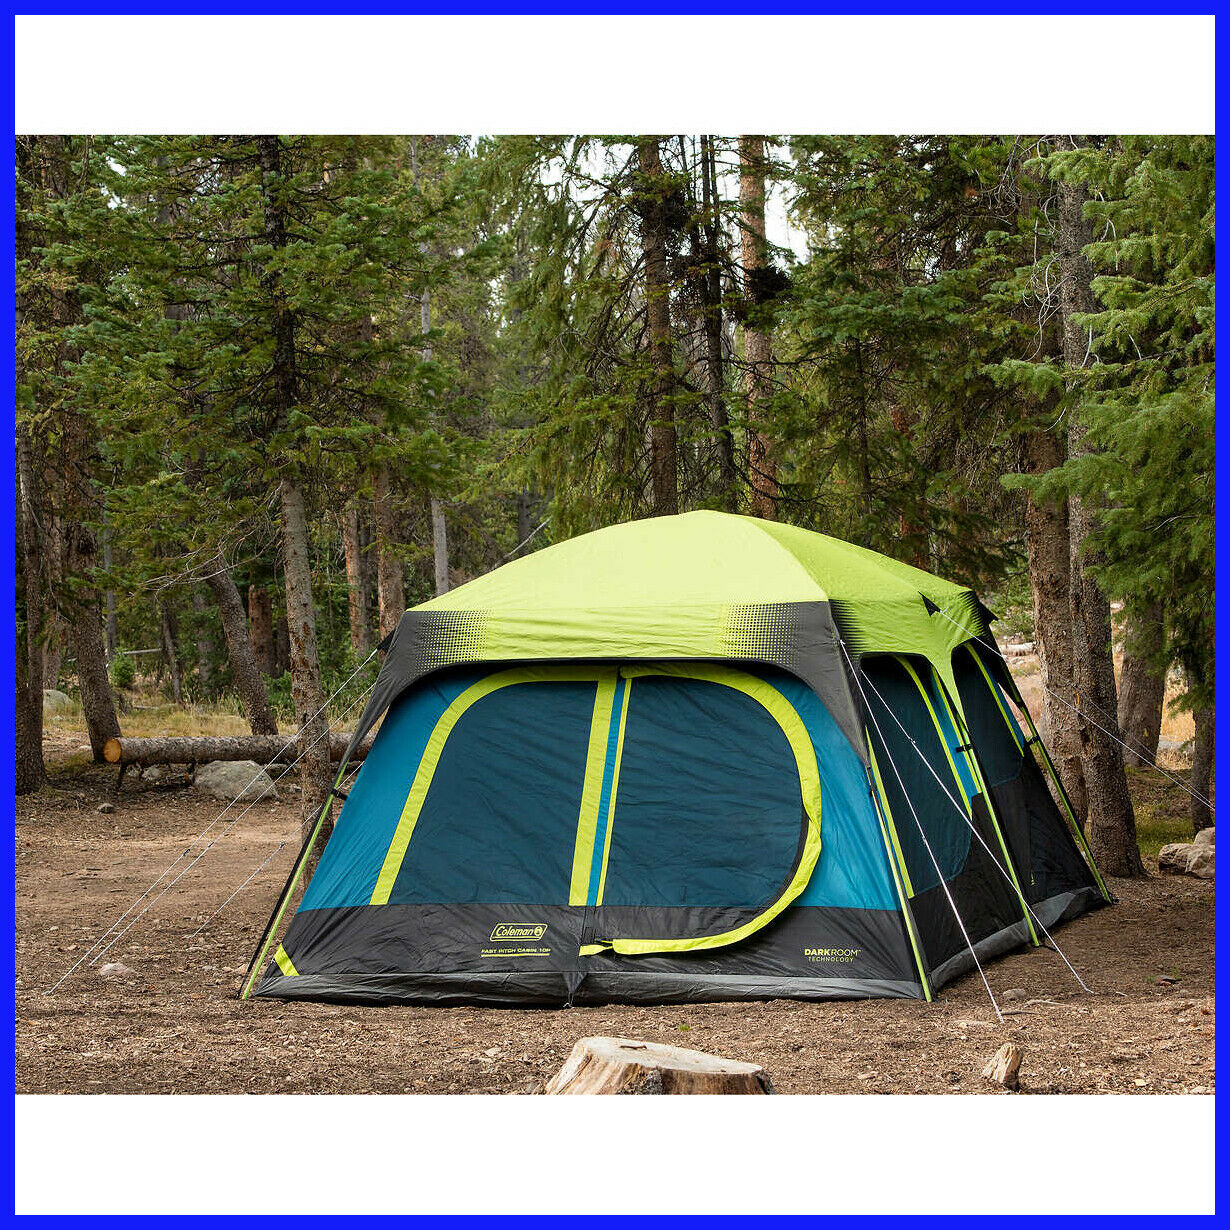 [NO Tax] Coleman 10-person Dark  Room Fast Pitch Cabin Tent, 14 x 10 ft  great selection & quick delivery